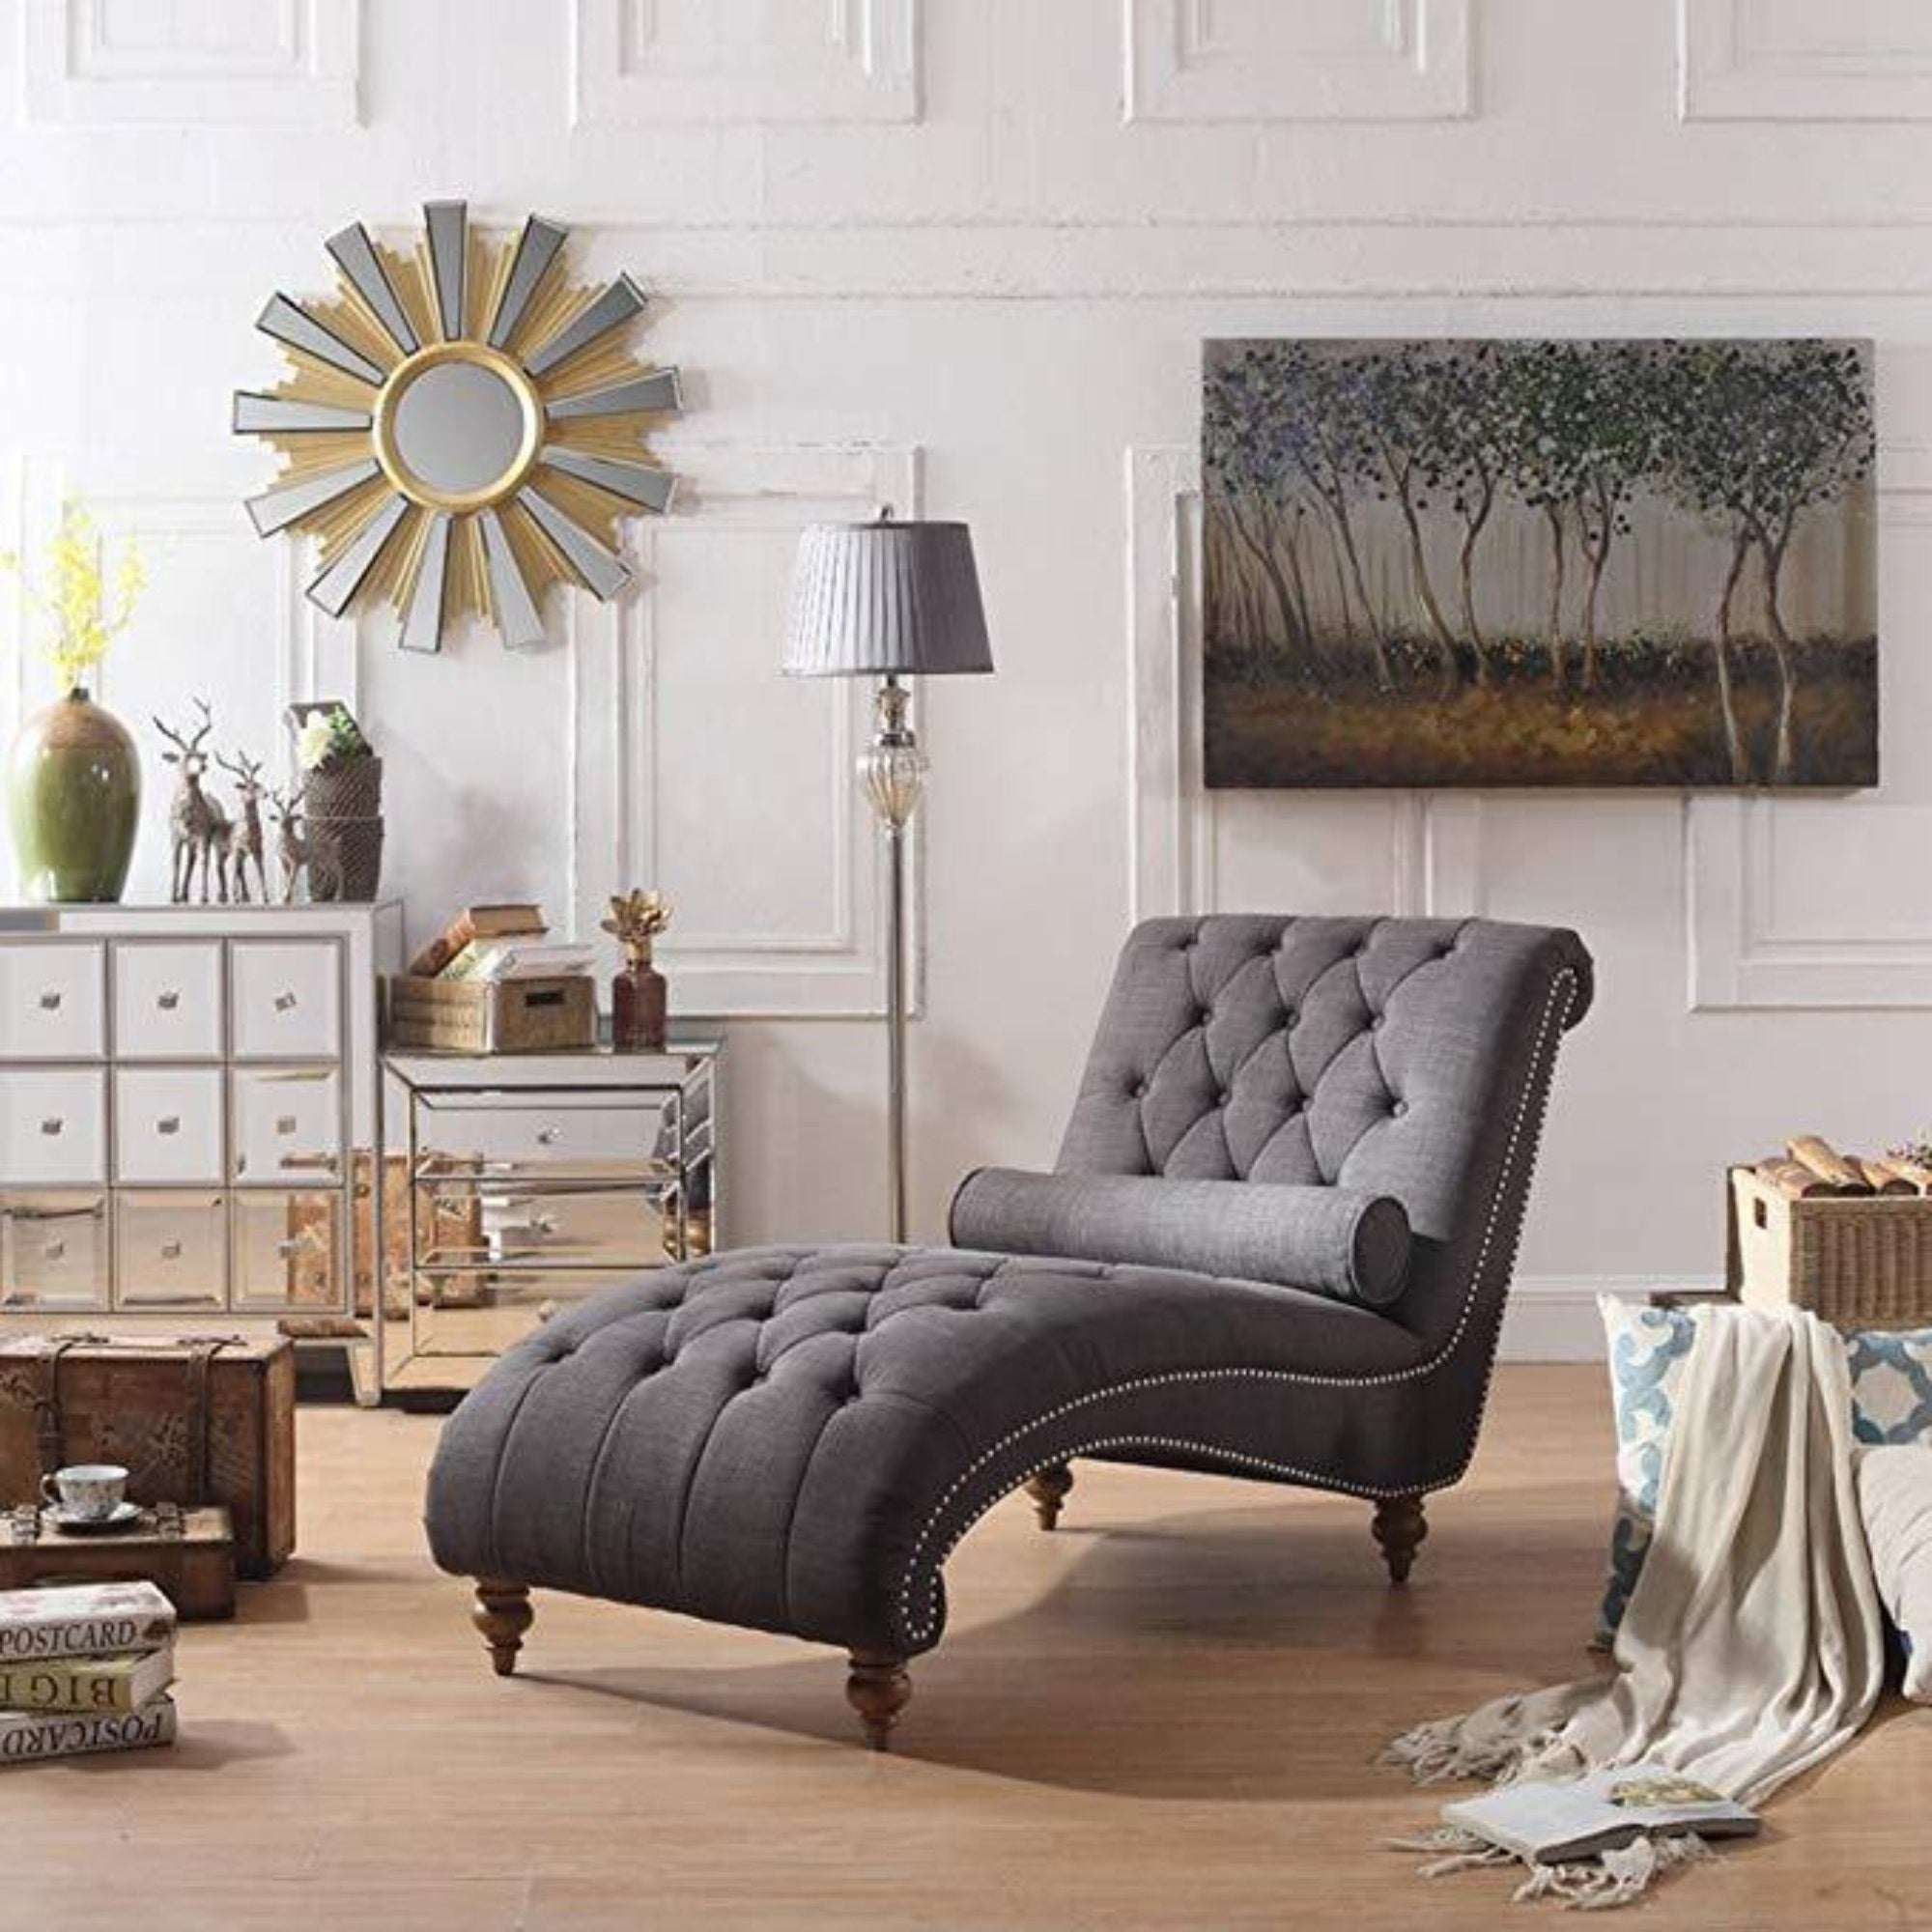 Luxorious Indoor Chaise Lounge Chair - Contemporary Tufted ...